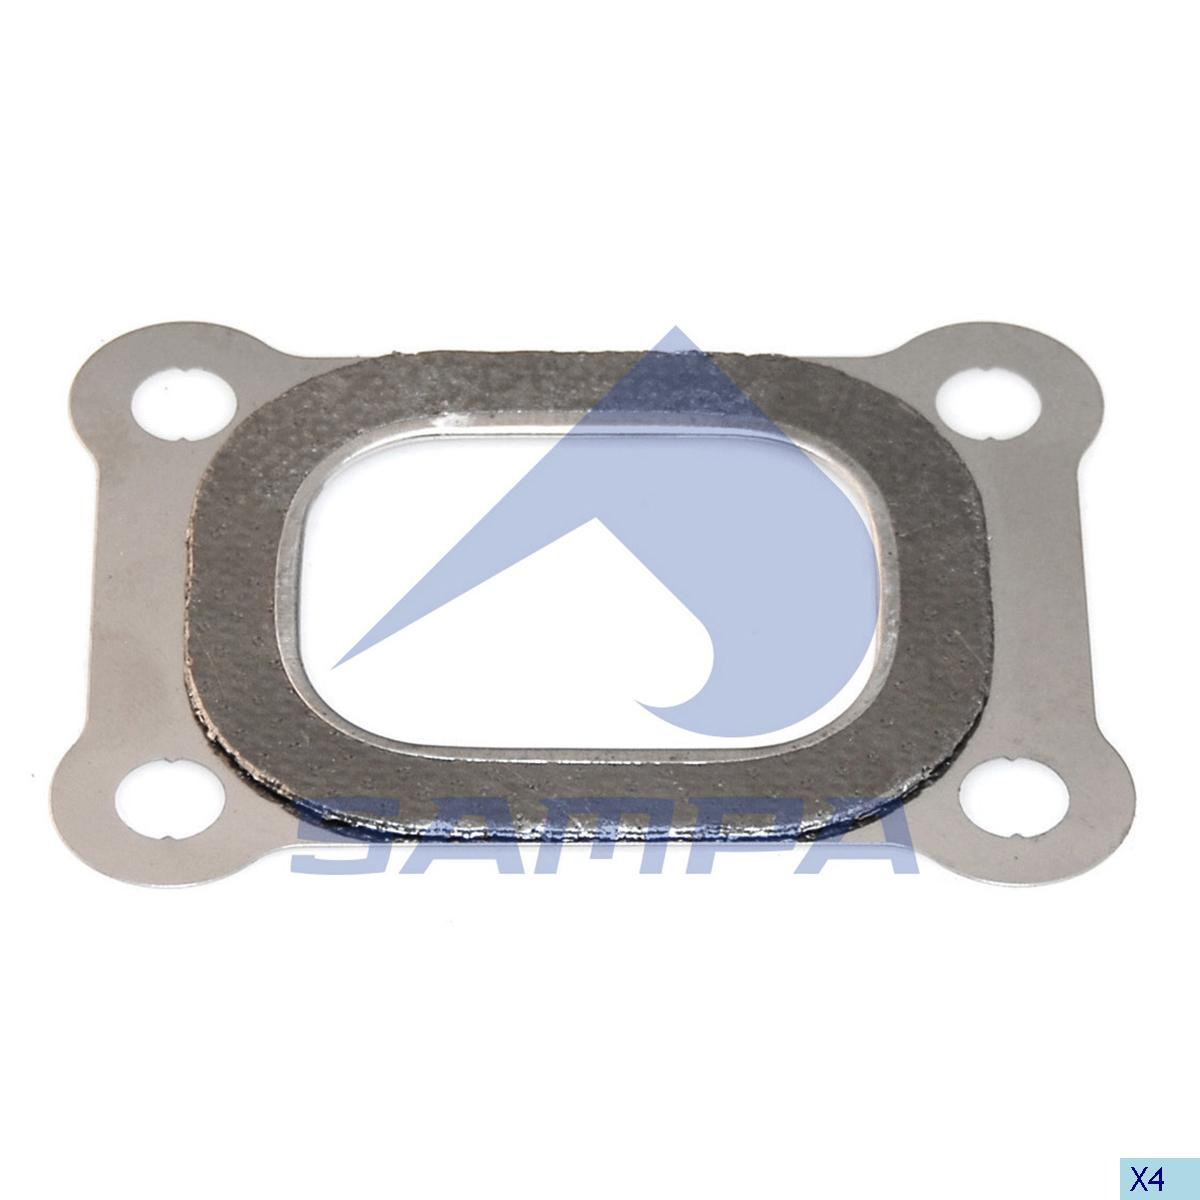 Gasket, Exhaust Manifold, Volvo, Engine